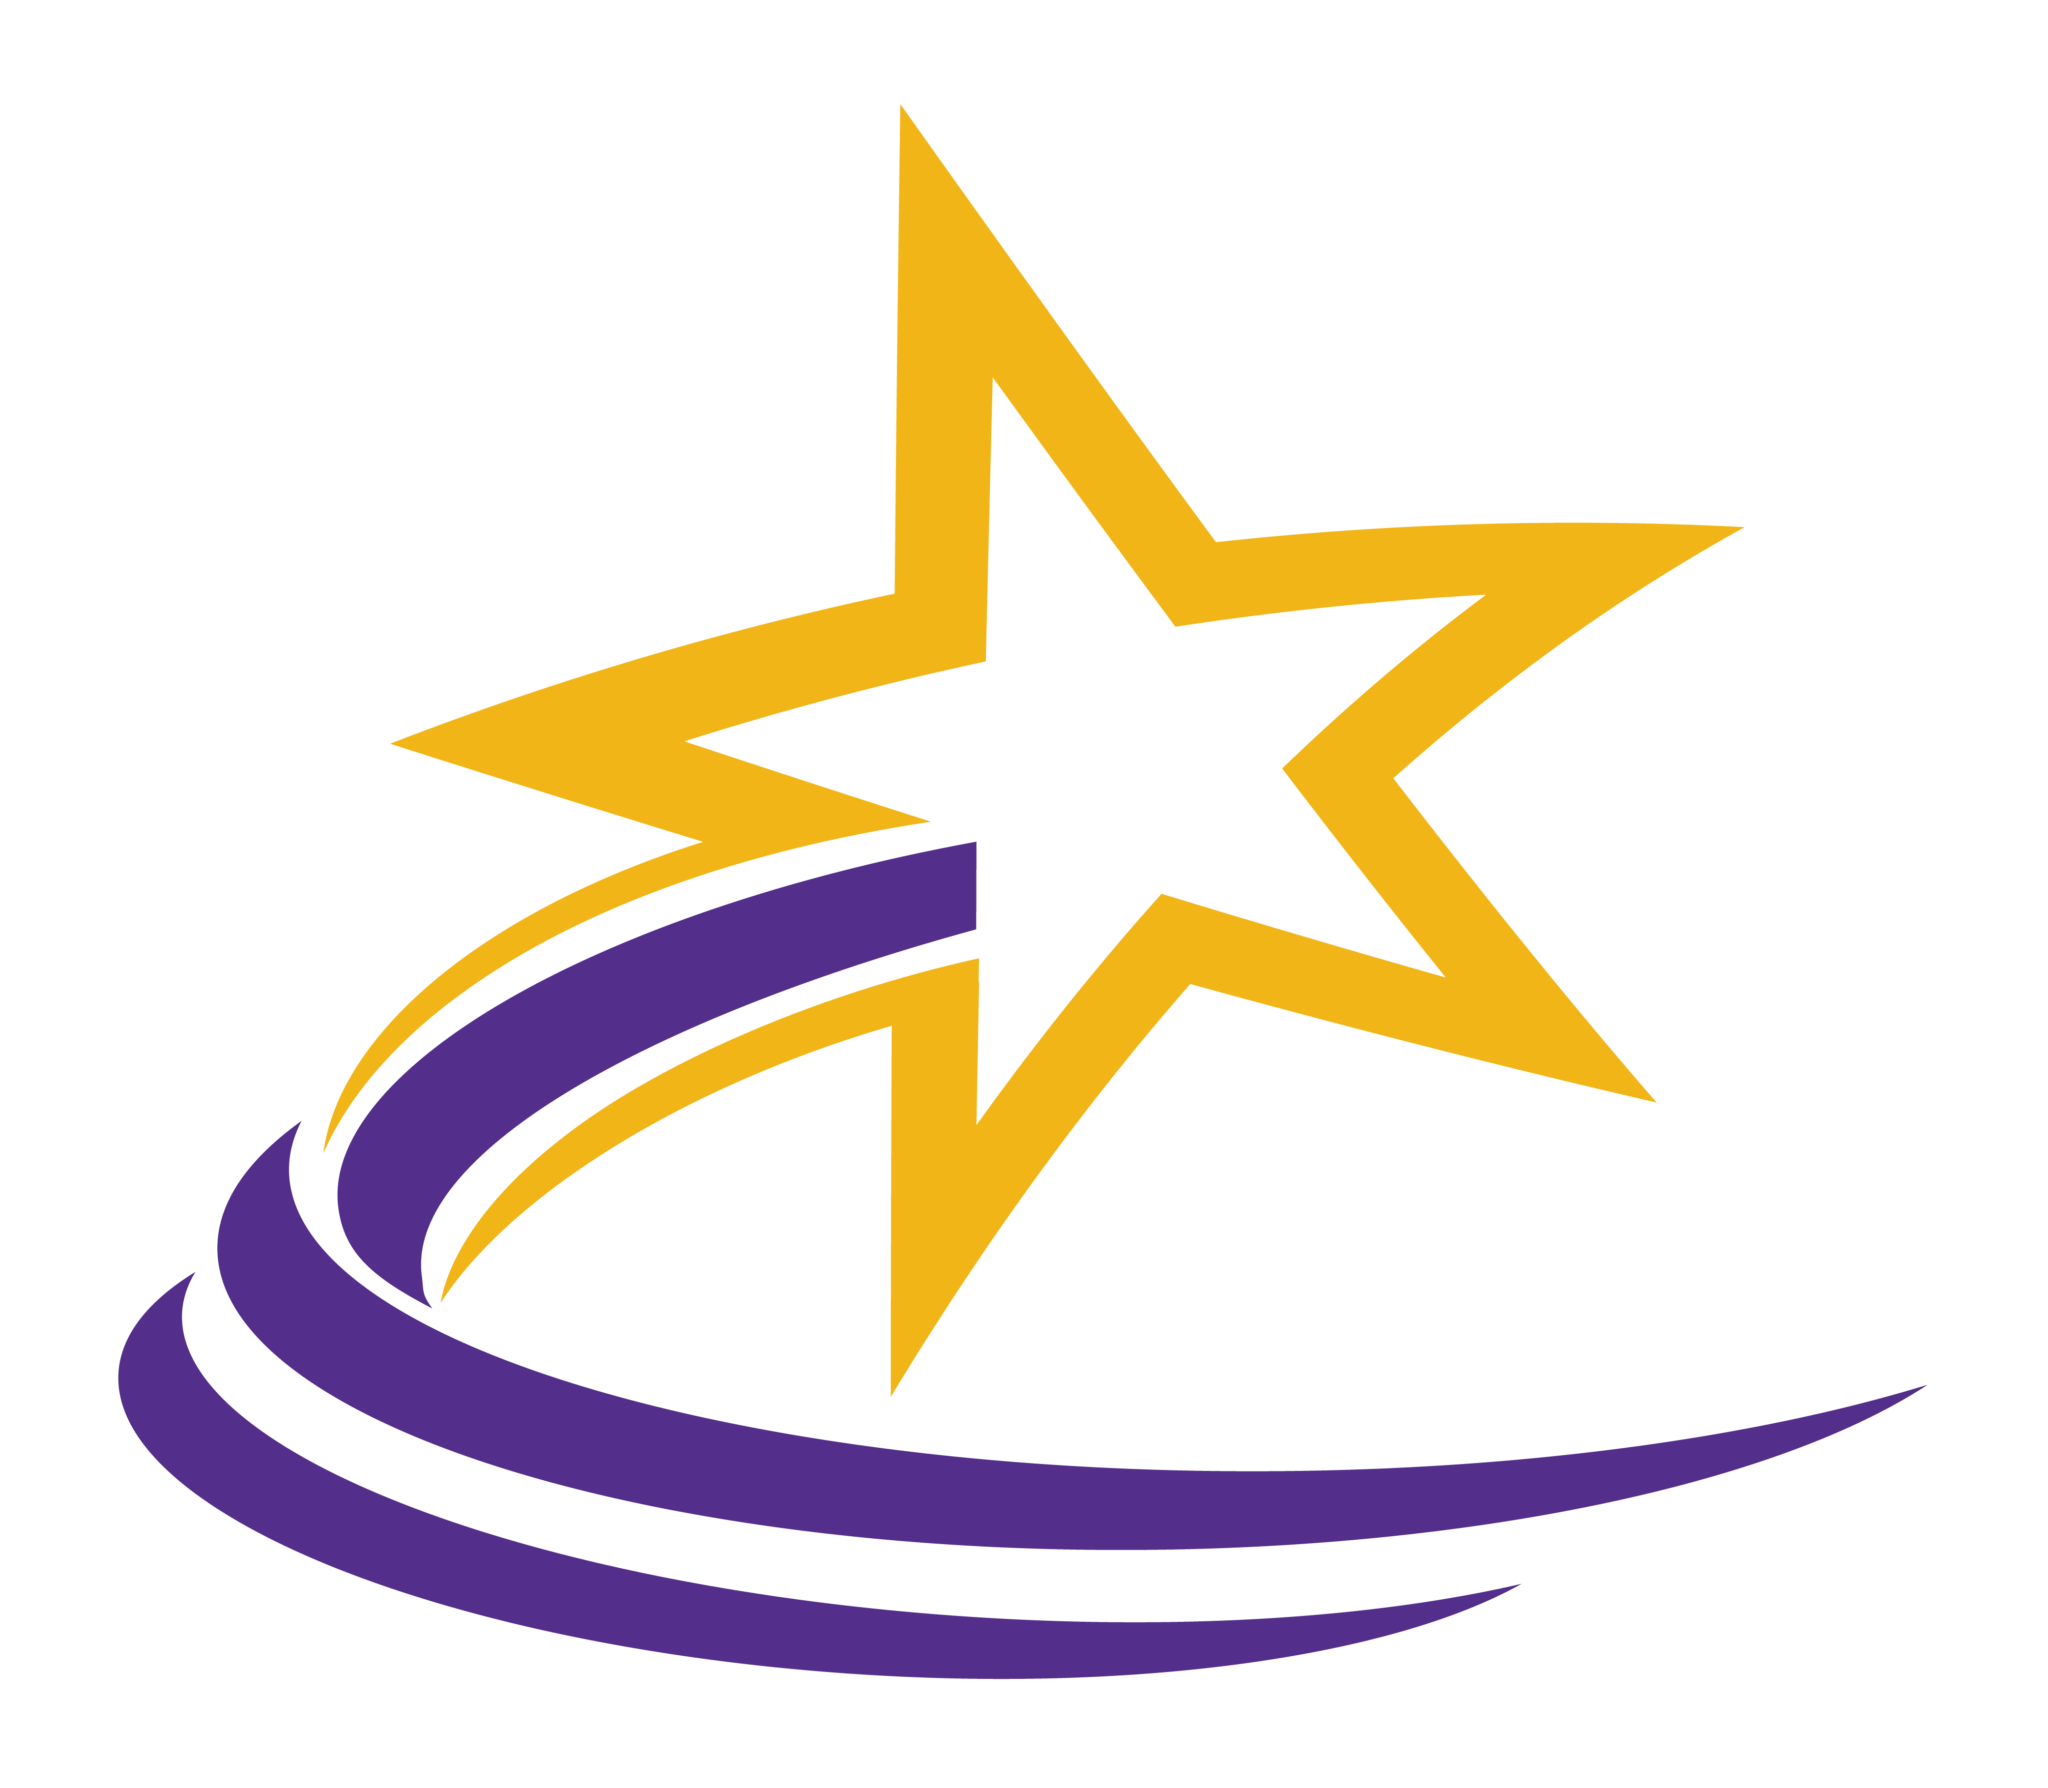 TWA_star_inverse_logo_final-01-01